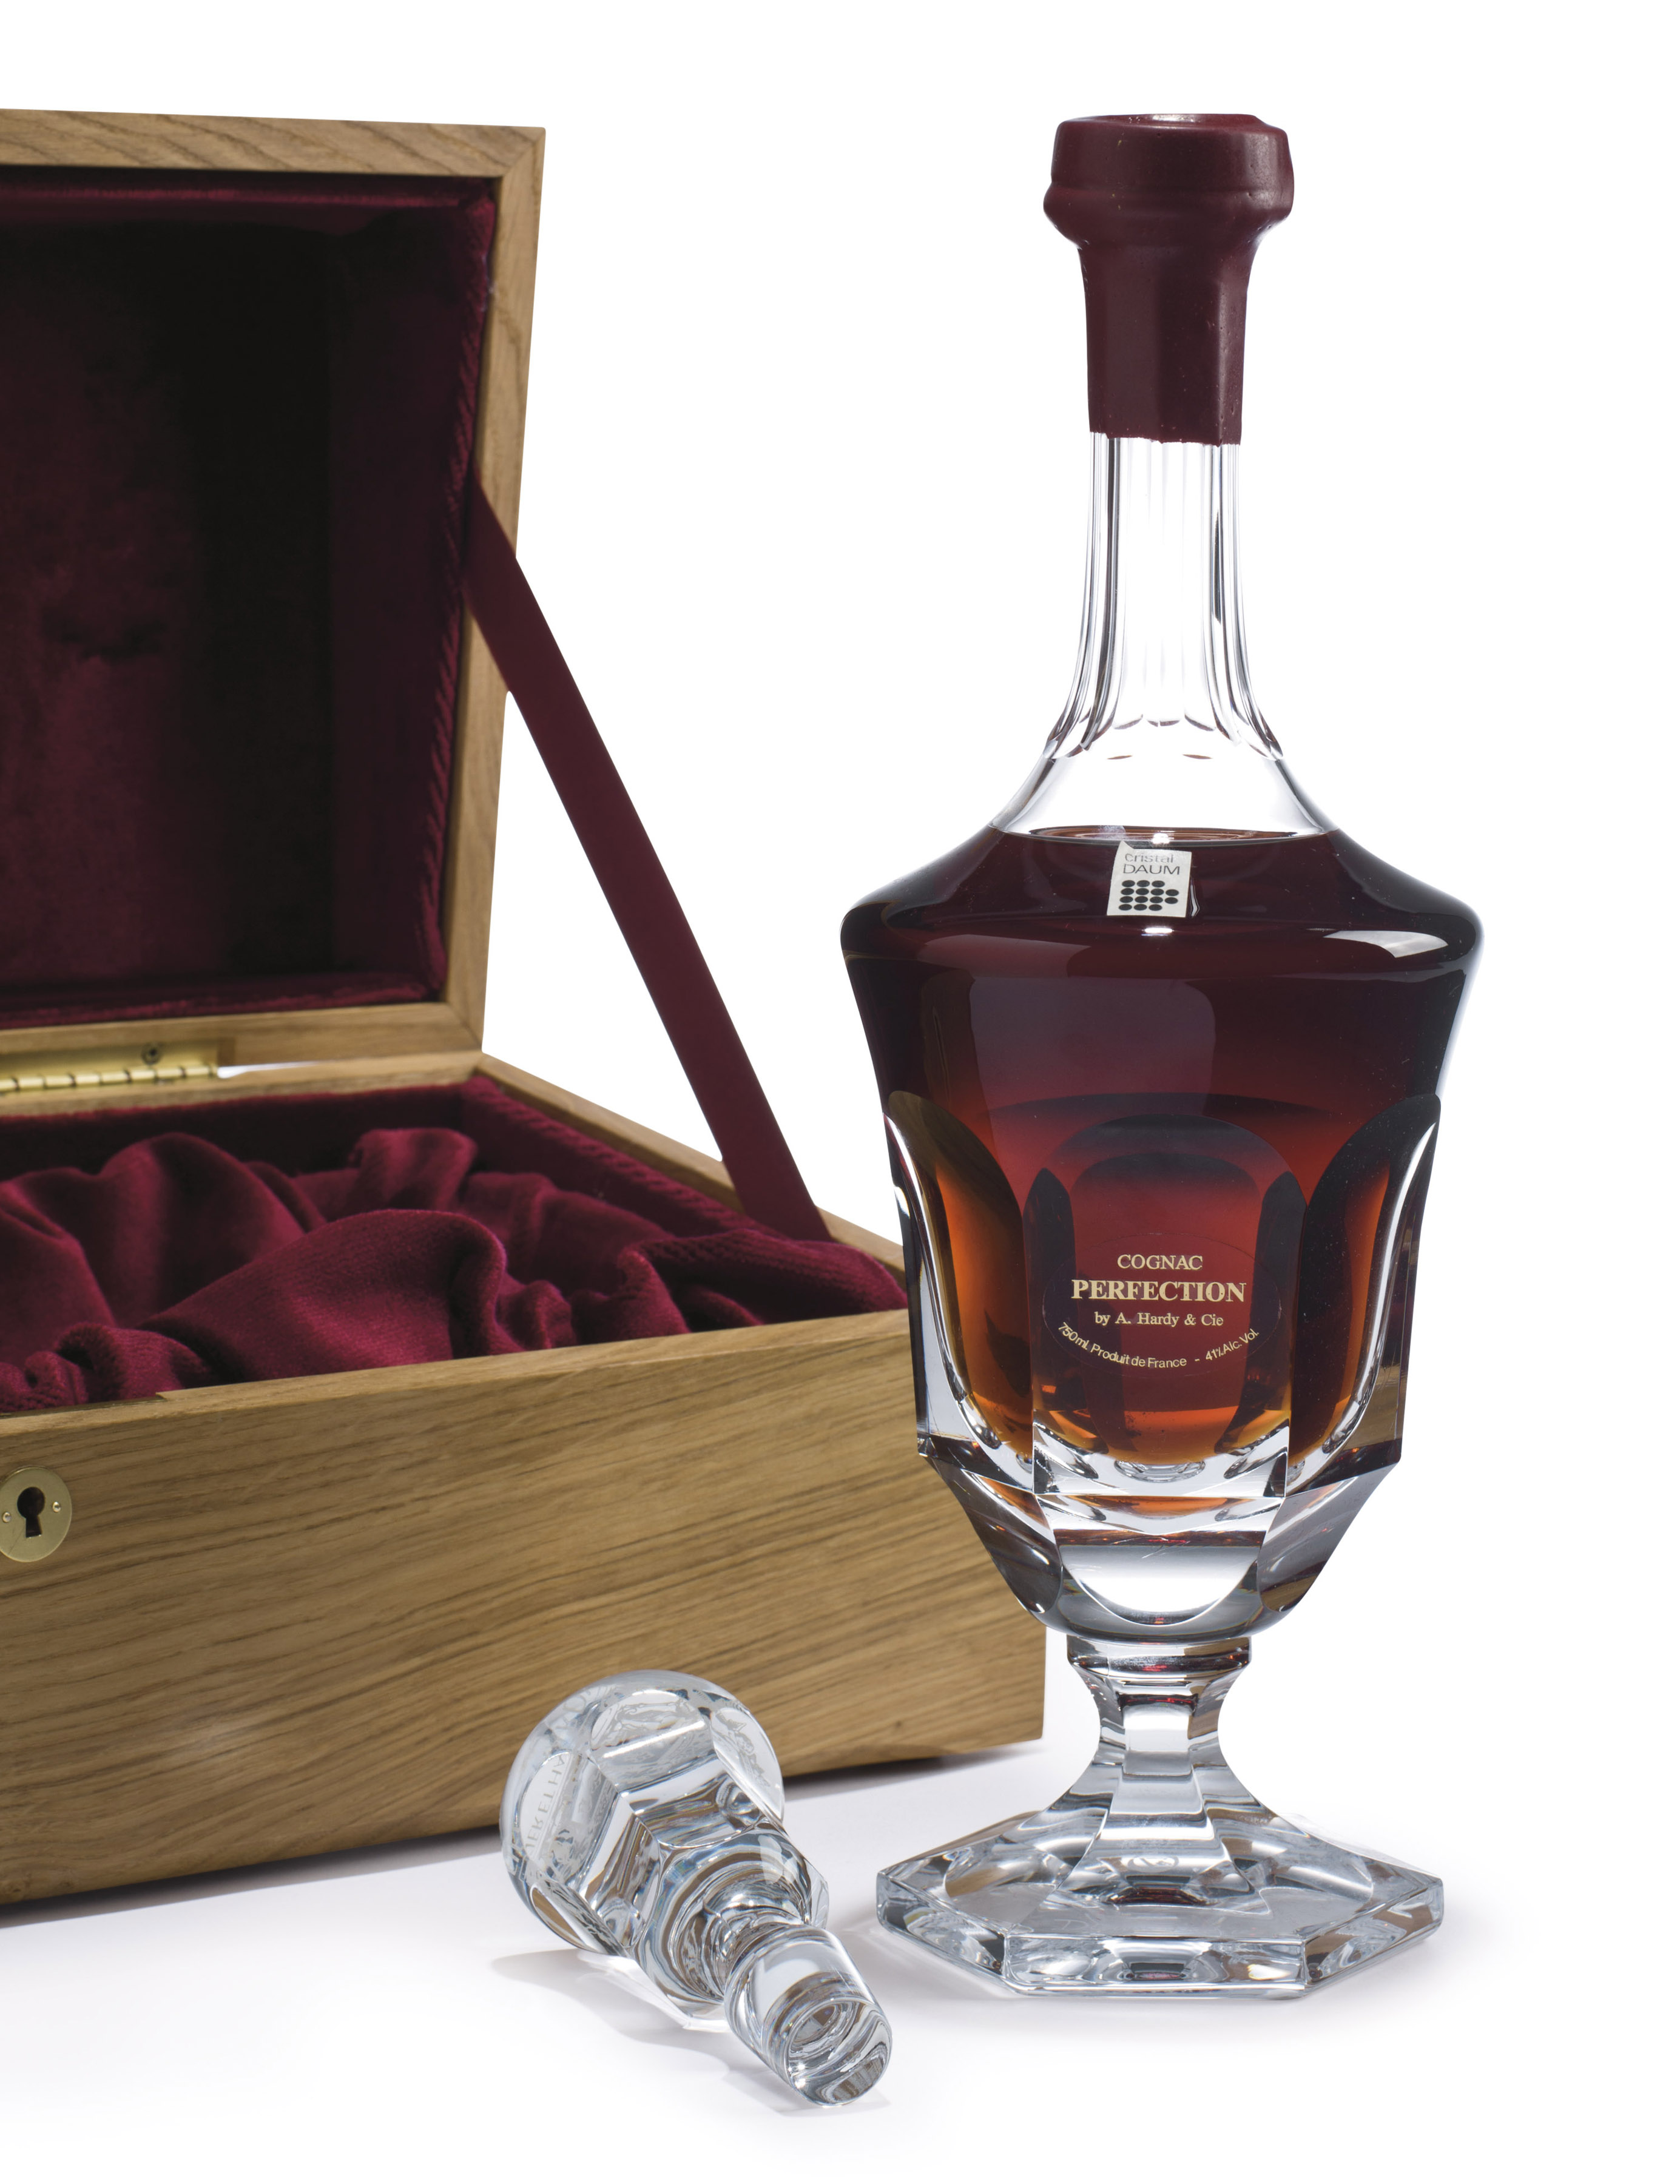 Hardy Perfection Cognac